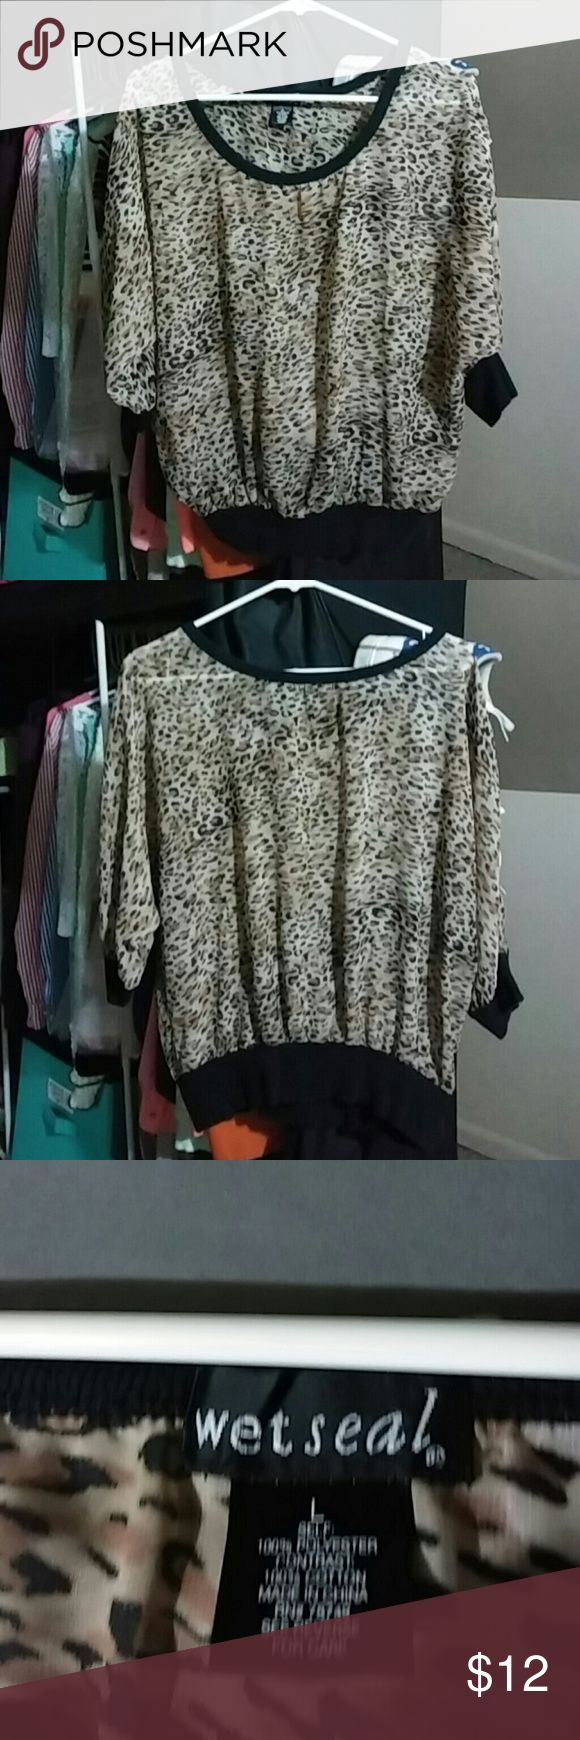 Wet seal leopard shirt Wet seal Leopard shirt  Size large Worn a couple times but in excellent condition Accepting offers Tops Blouses